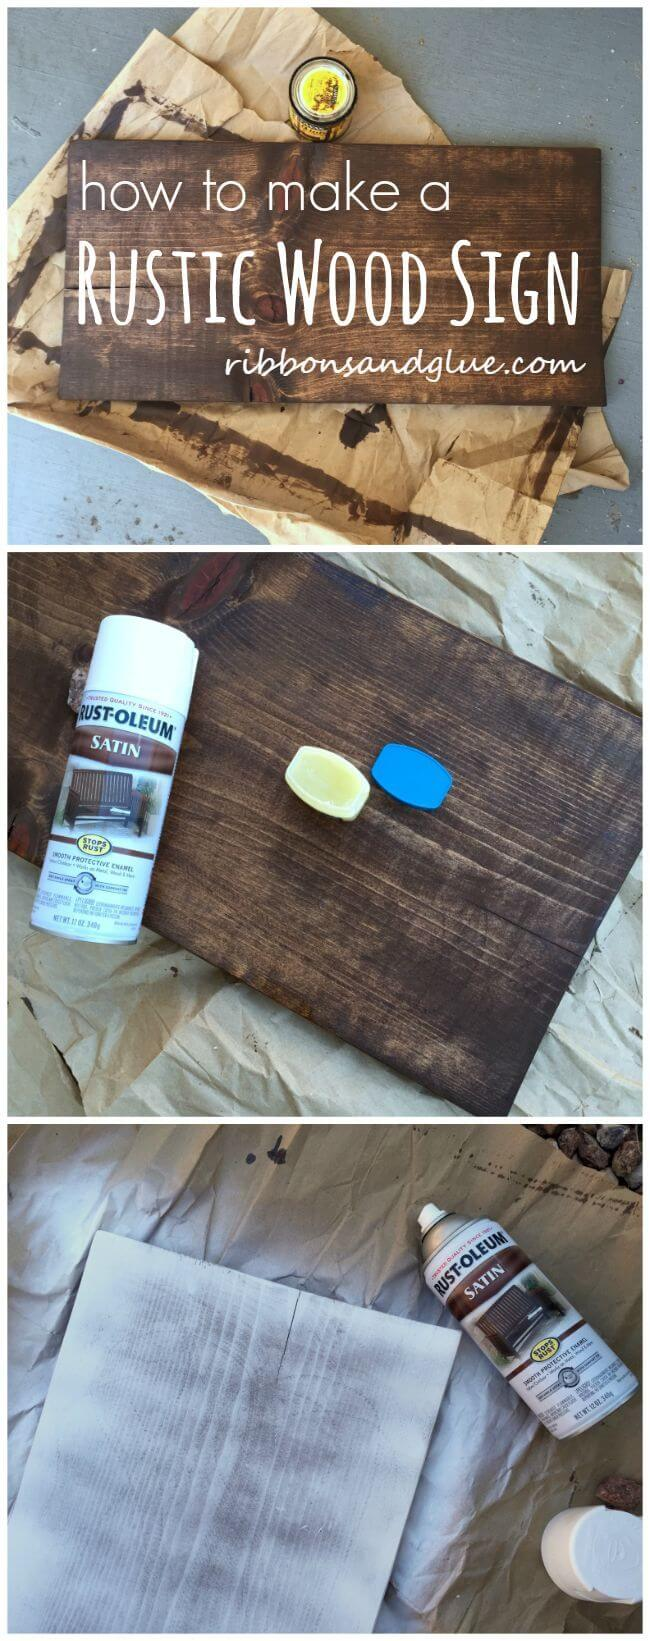 Rustic Wood Sign Project Tutorial